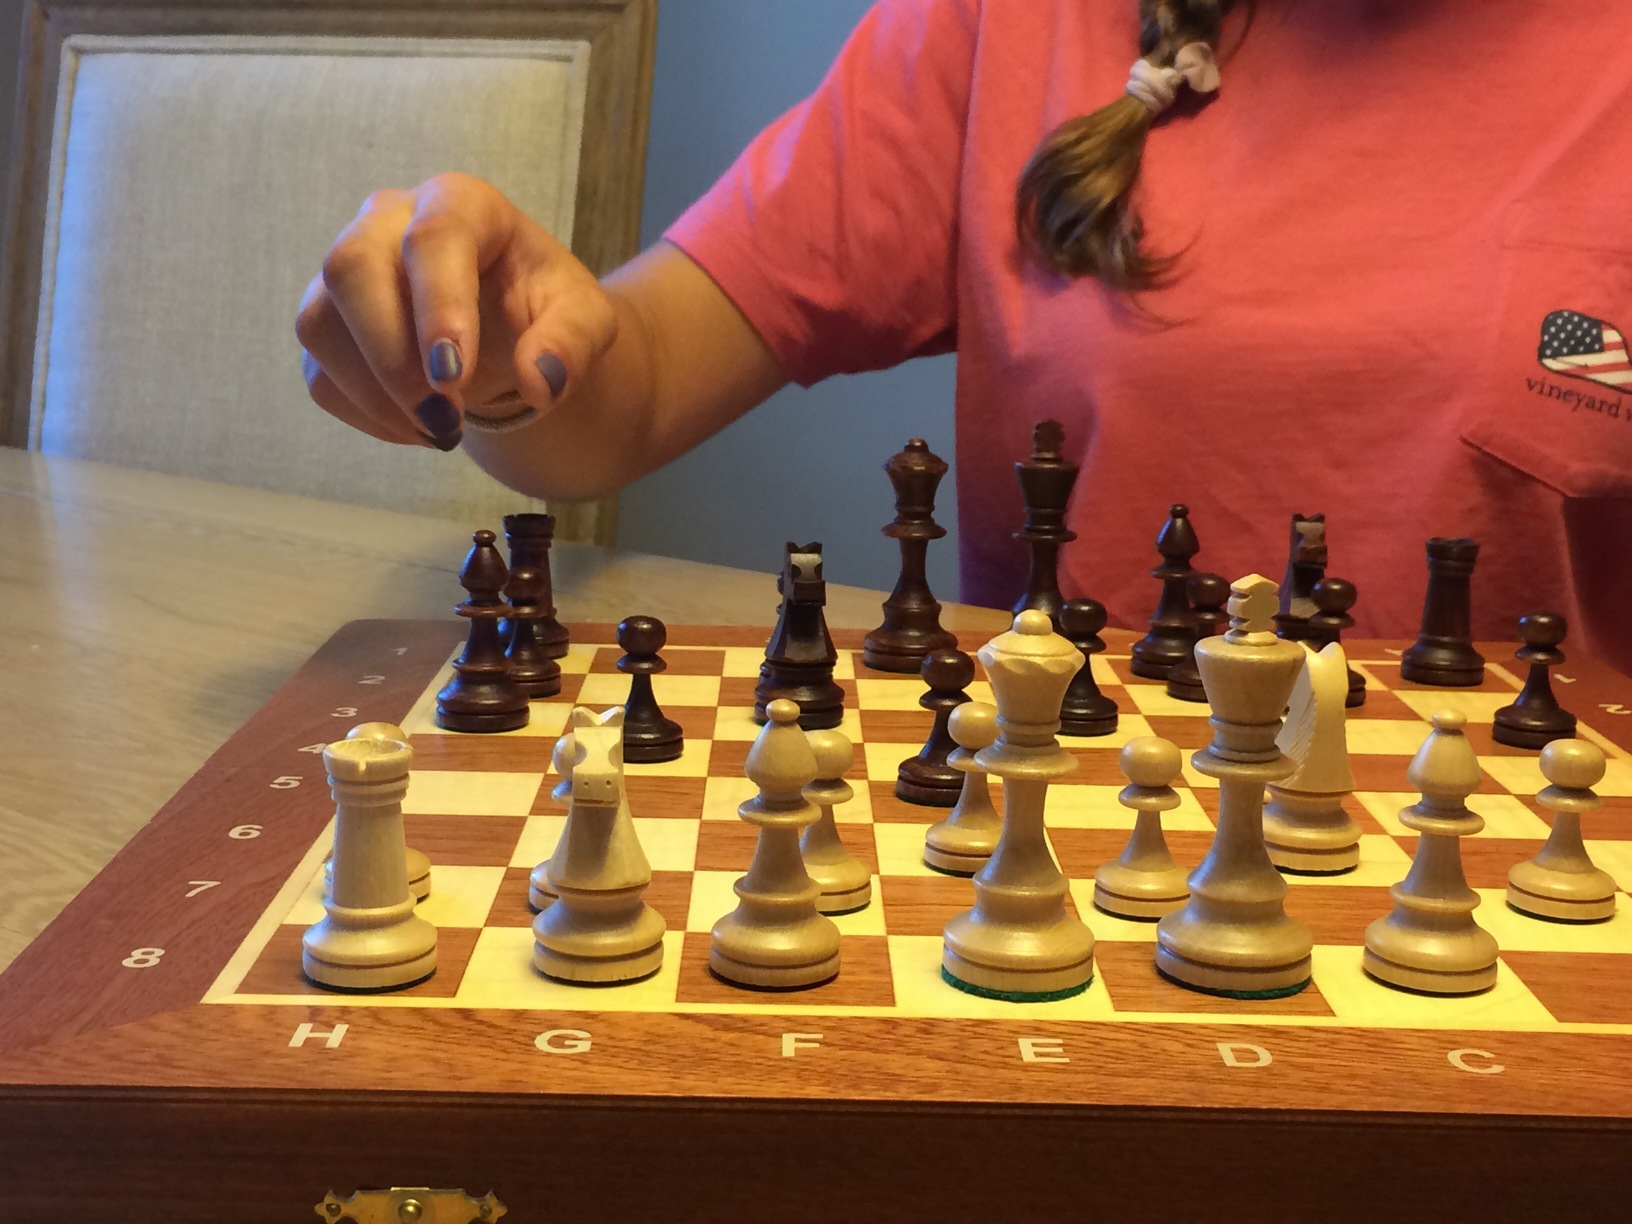 Controversy arises as Iran, the host of next year's Women's World Chess Championship, will require women to adhere to the country's